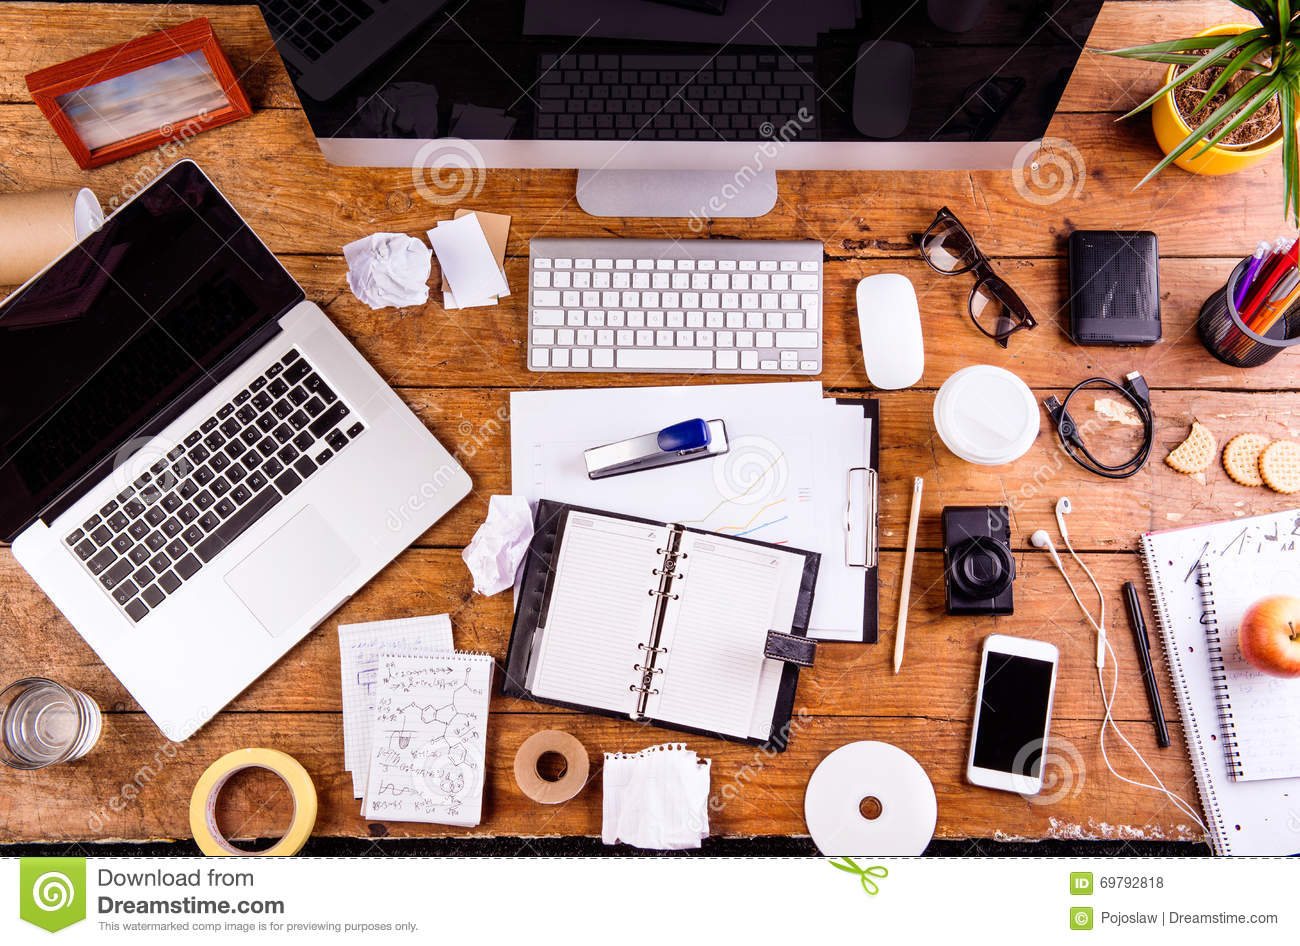 Desk With Various Gadgets And Office Supplies Flat Lay Stock Photo Image Of Apple Plant